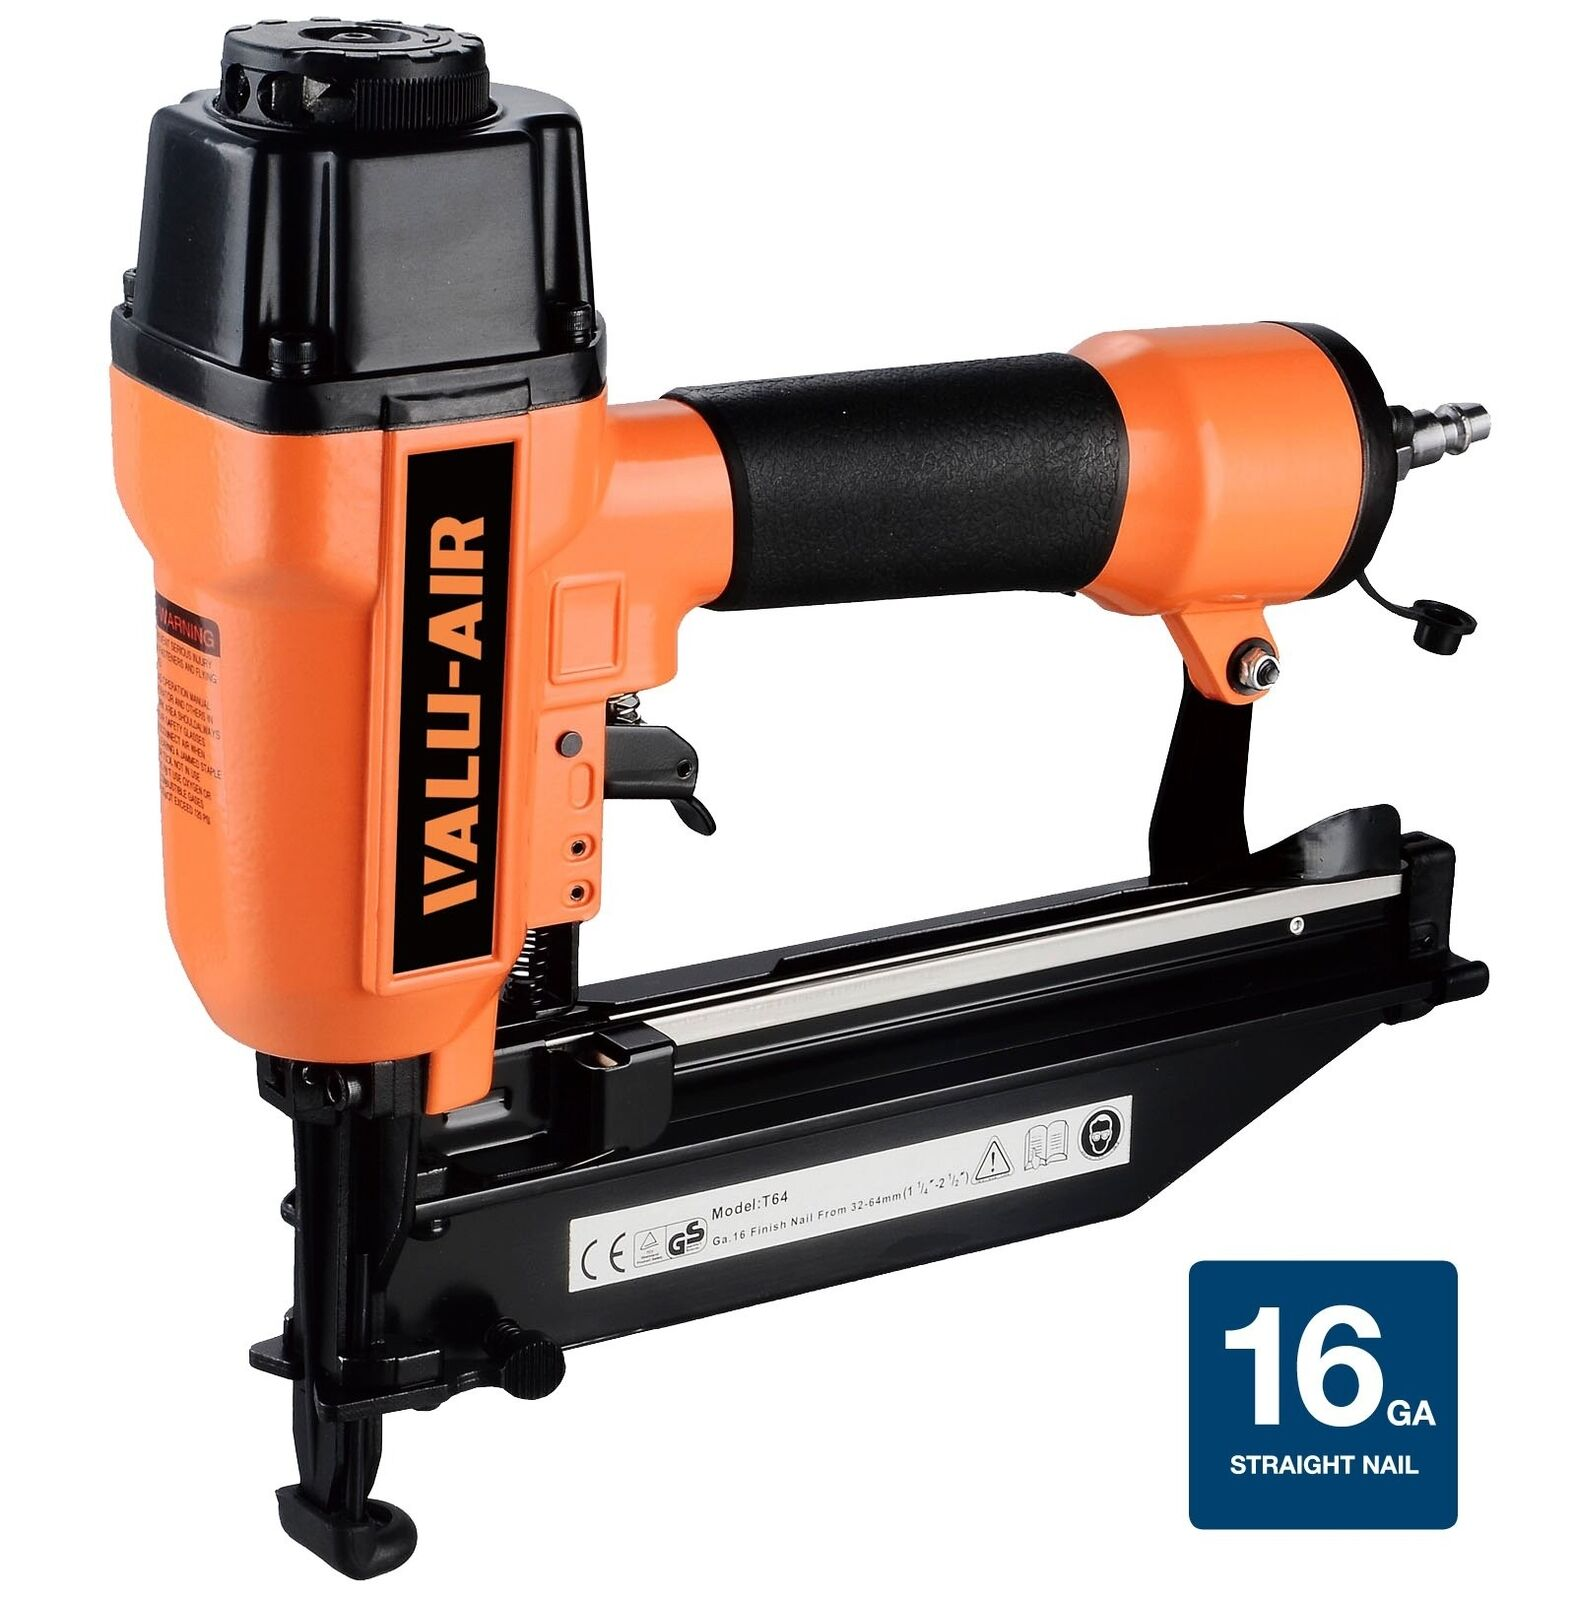 Valu-Air T64C 16 Gauge Finish Nailer 7/8-Inch 7/8-Inch 7/8-Inch to 2-1/2-Inch 0597d3